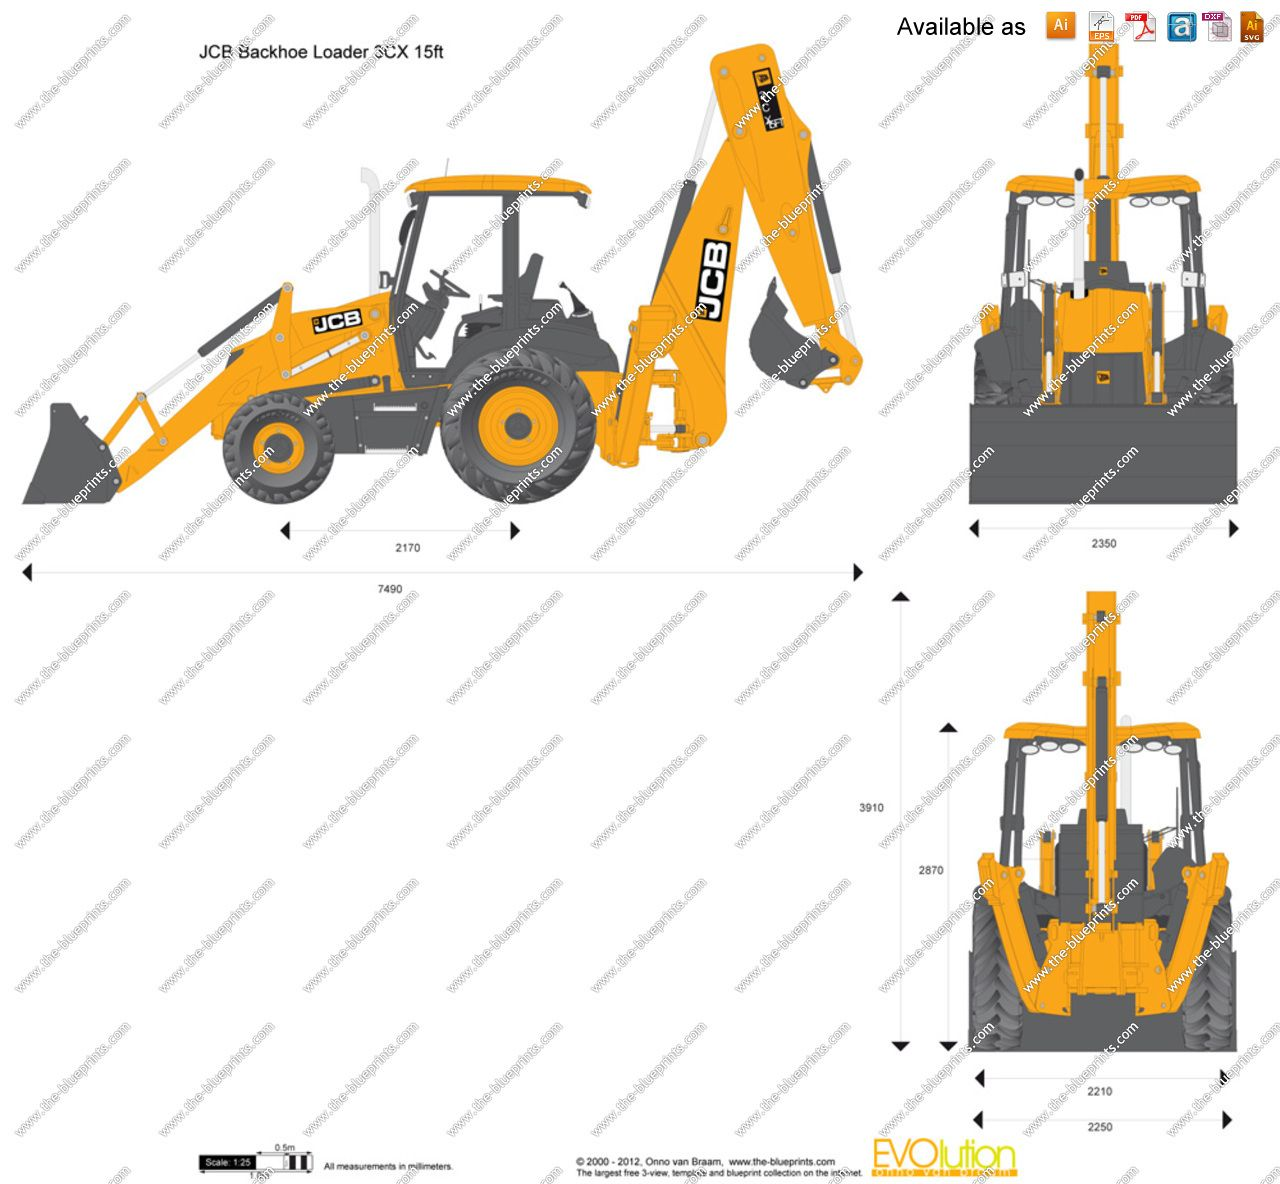 Jcb 3cx 15ft Backhoe Loader Backhoe Loader Backhoe